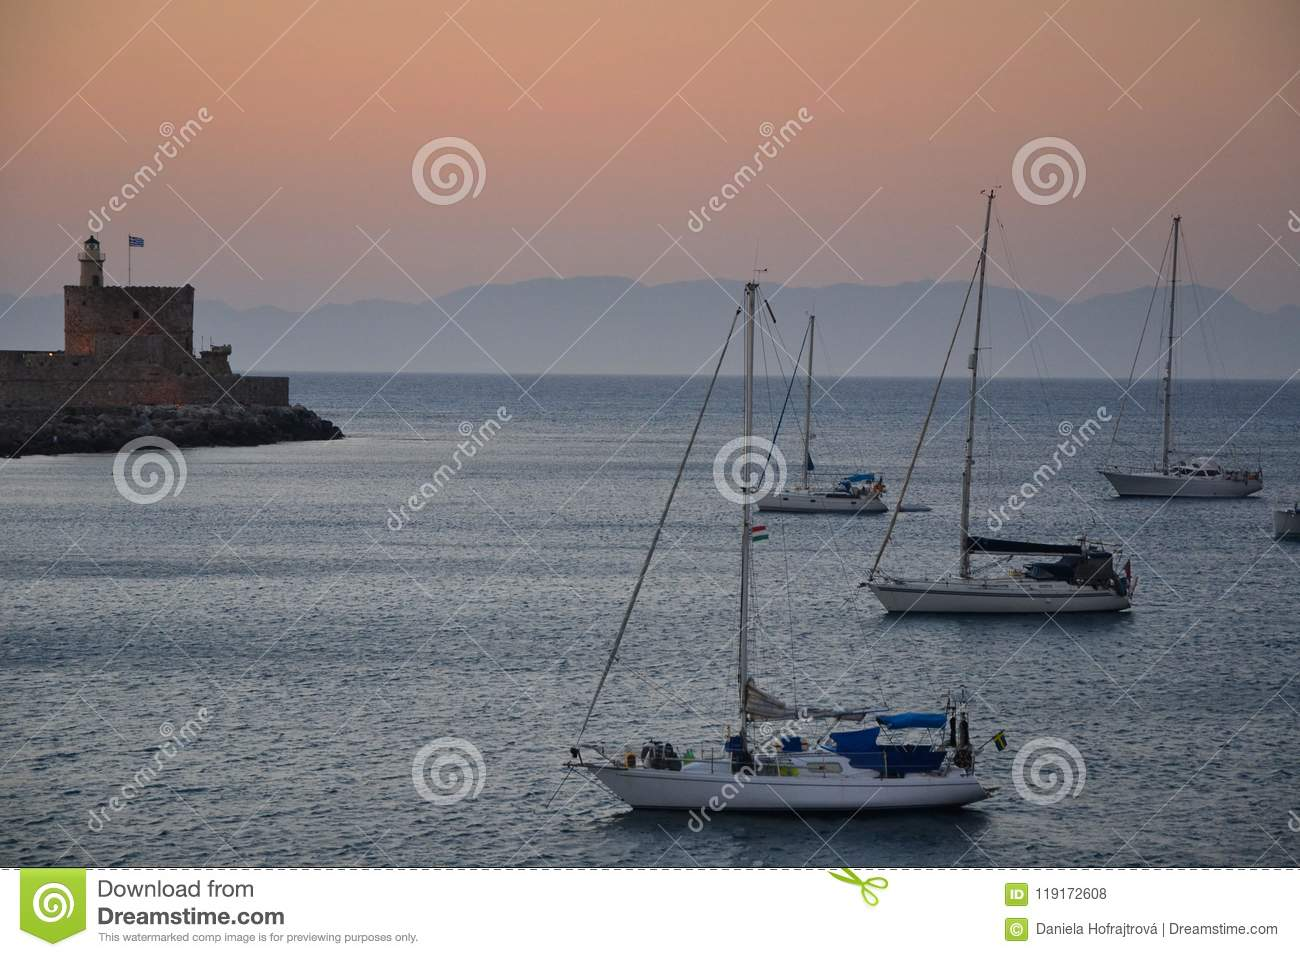 Old Town of Rhodos while pink sunset, calm sea, greek monument and harbour view. Warm colours, foggy background. Rhodos, Greece, E